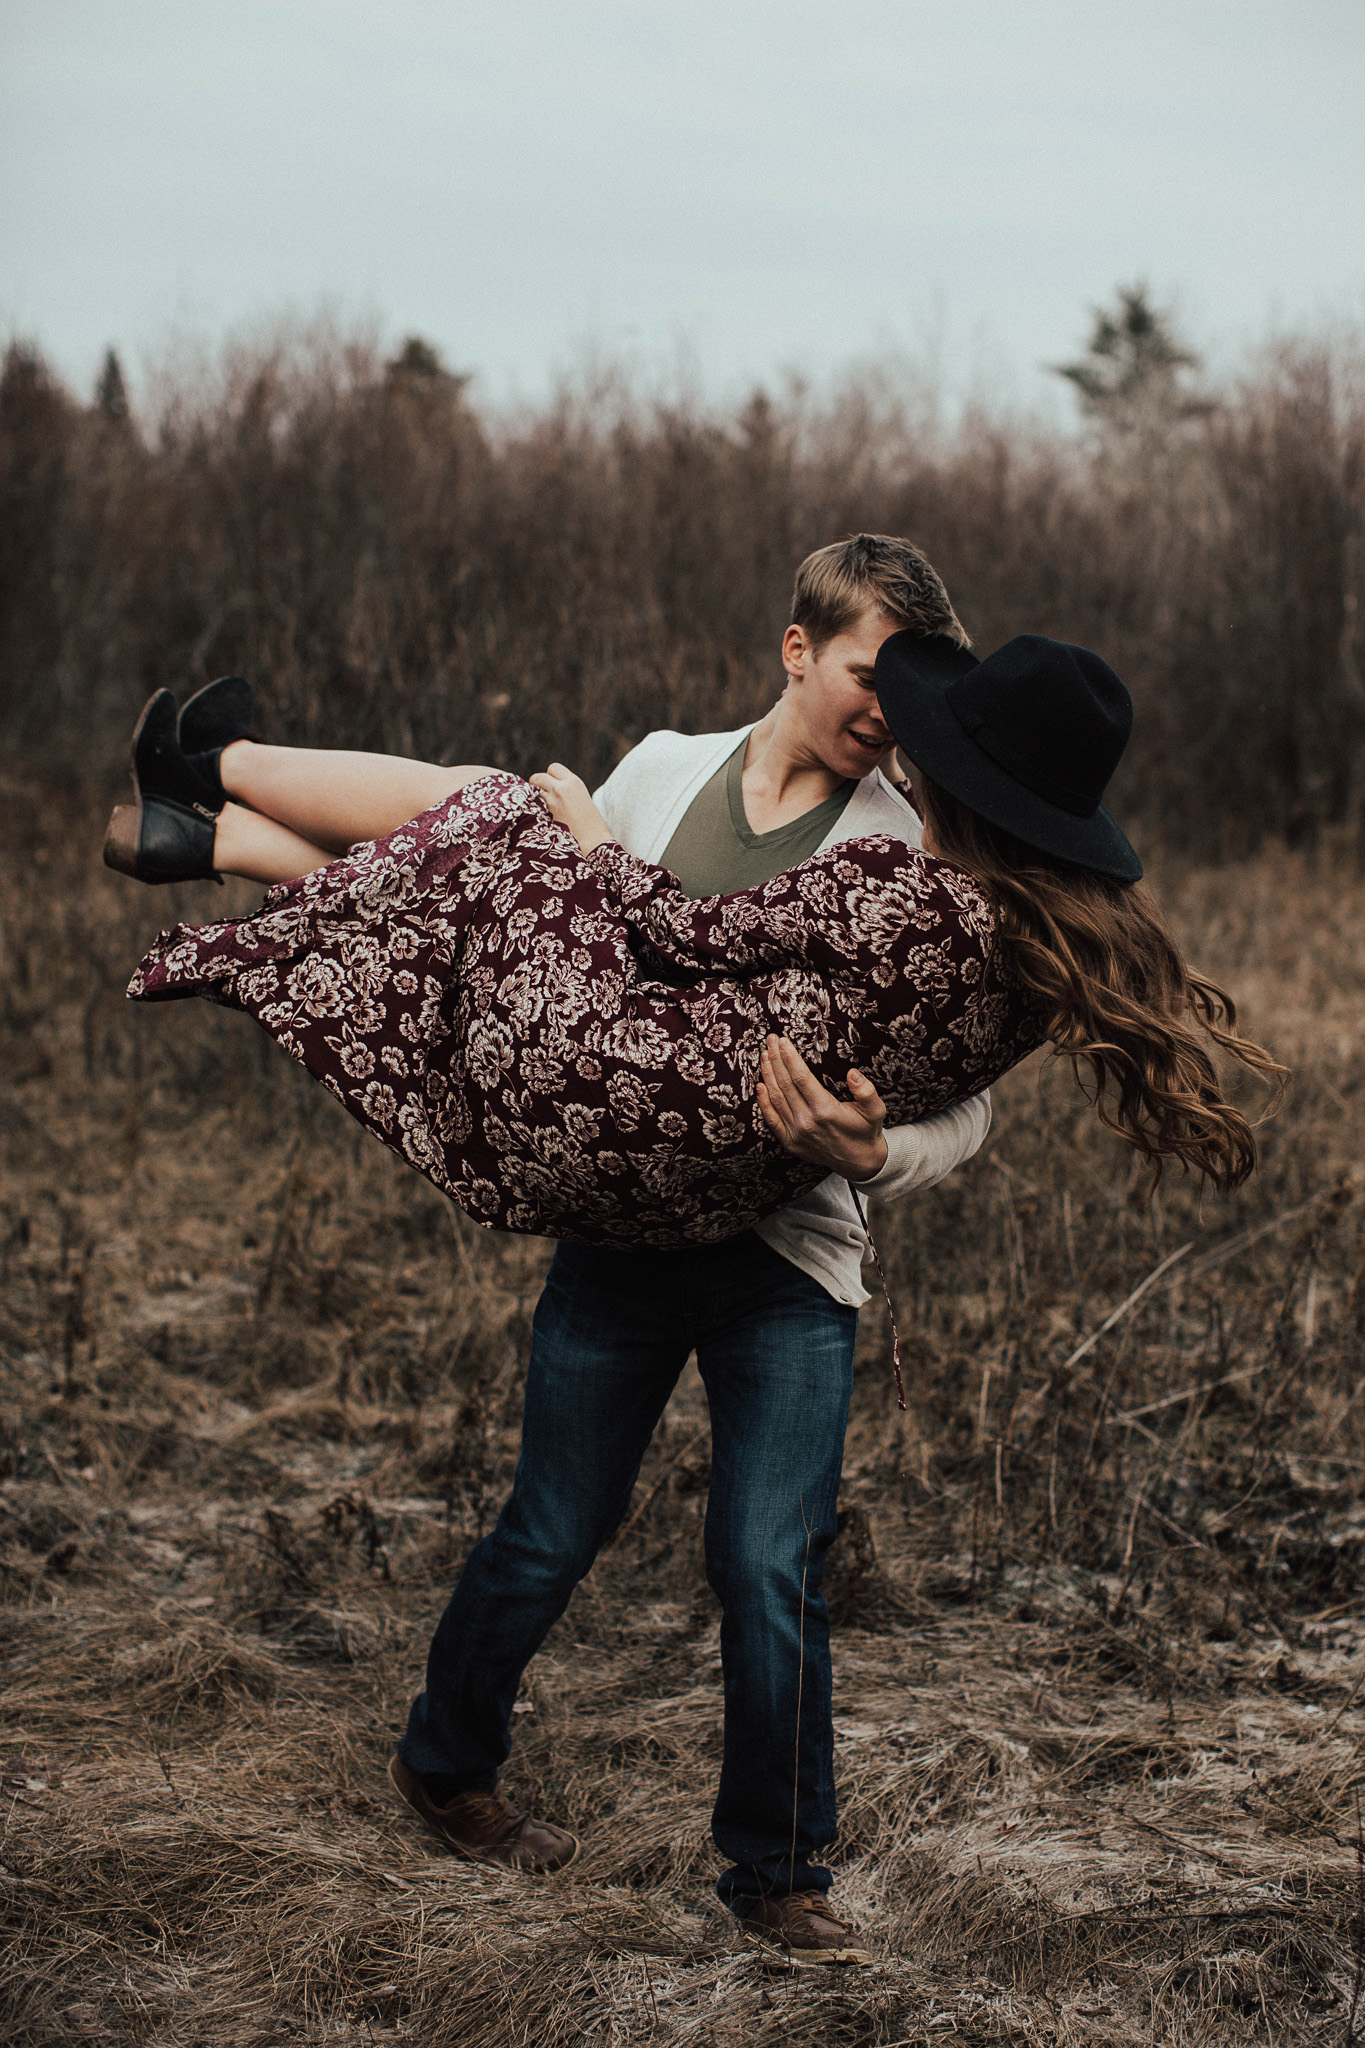 Edmonton Engagement Photographer - Michelle Larmand Photography - Mossy woods engagement session008